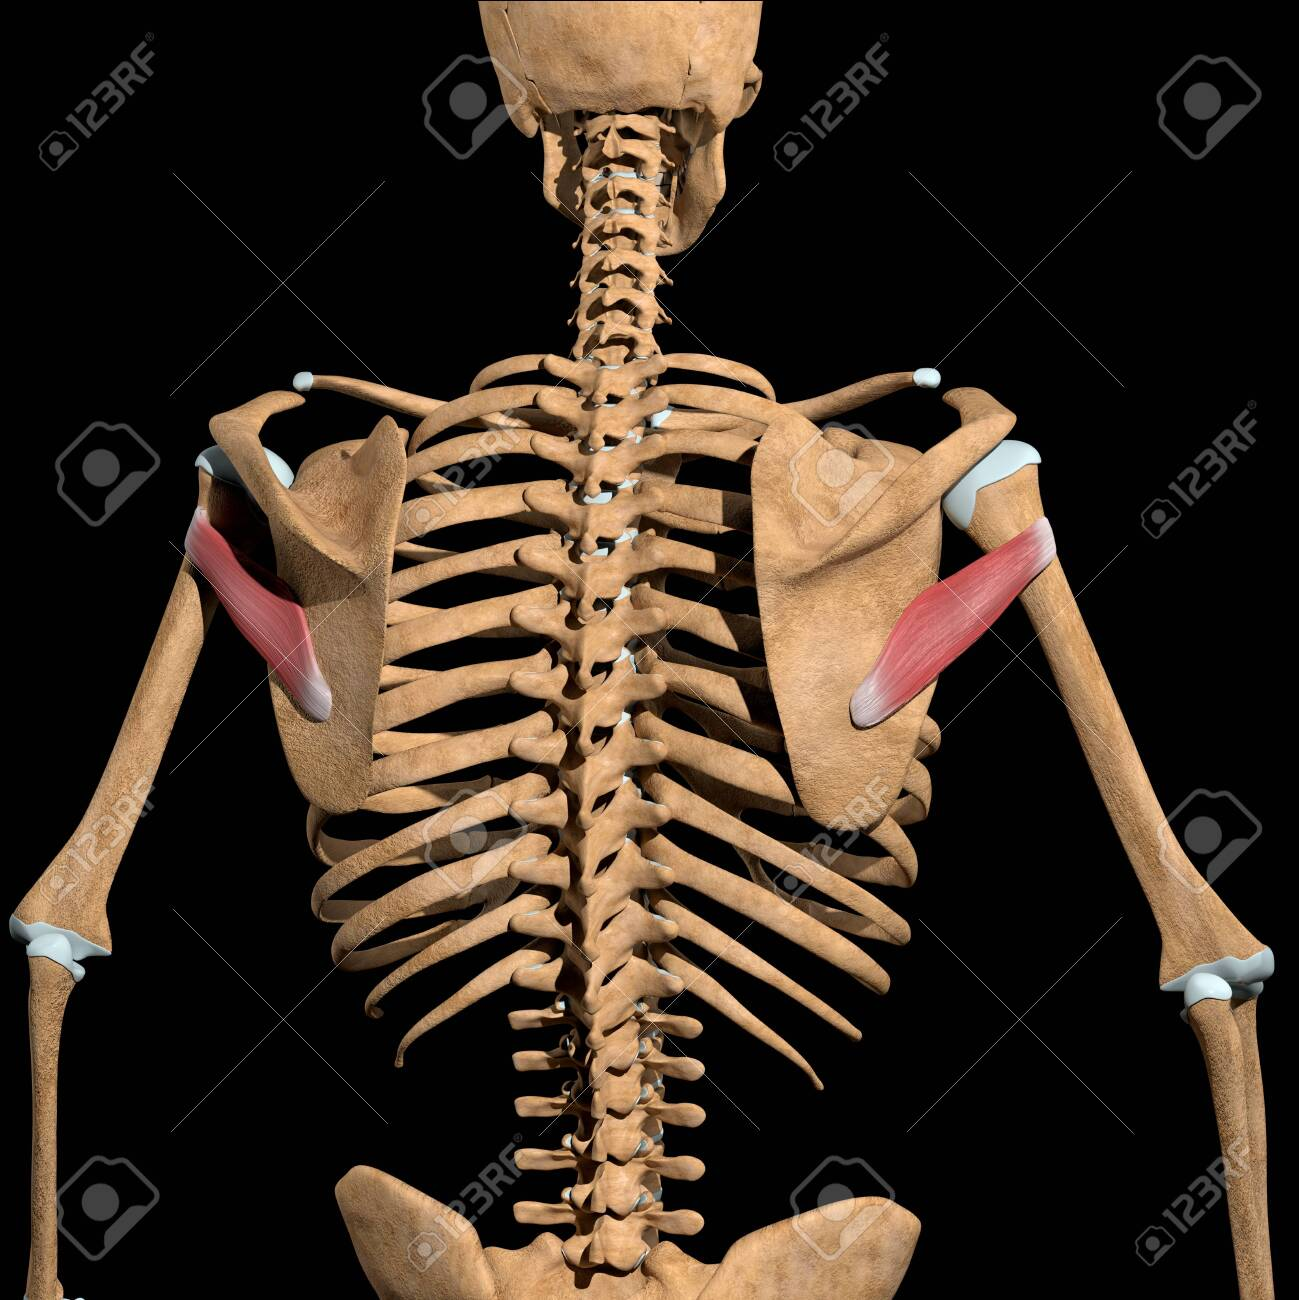 This 3d illustration shows the teres minor muscles on skeleton - 141625428